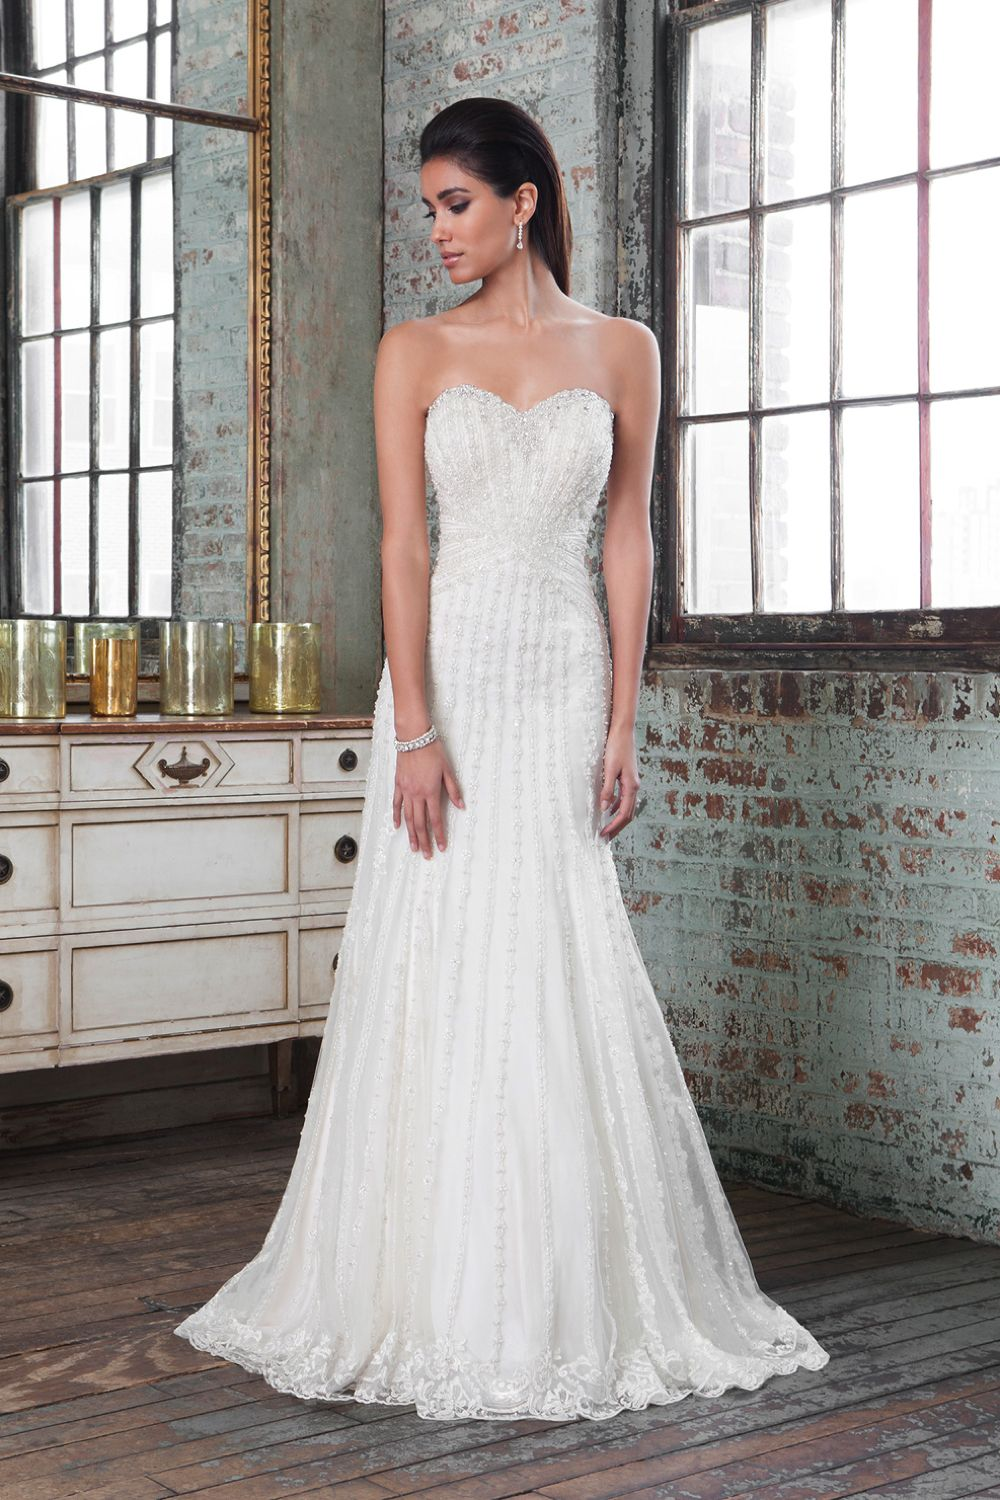 The incredible justin alexander signature wedding dress collection justin alexander signature 2016 wedding dress collection weddingdress strapless ombrellifo Choice Image